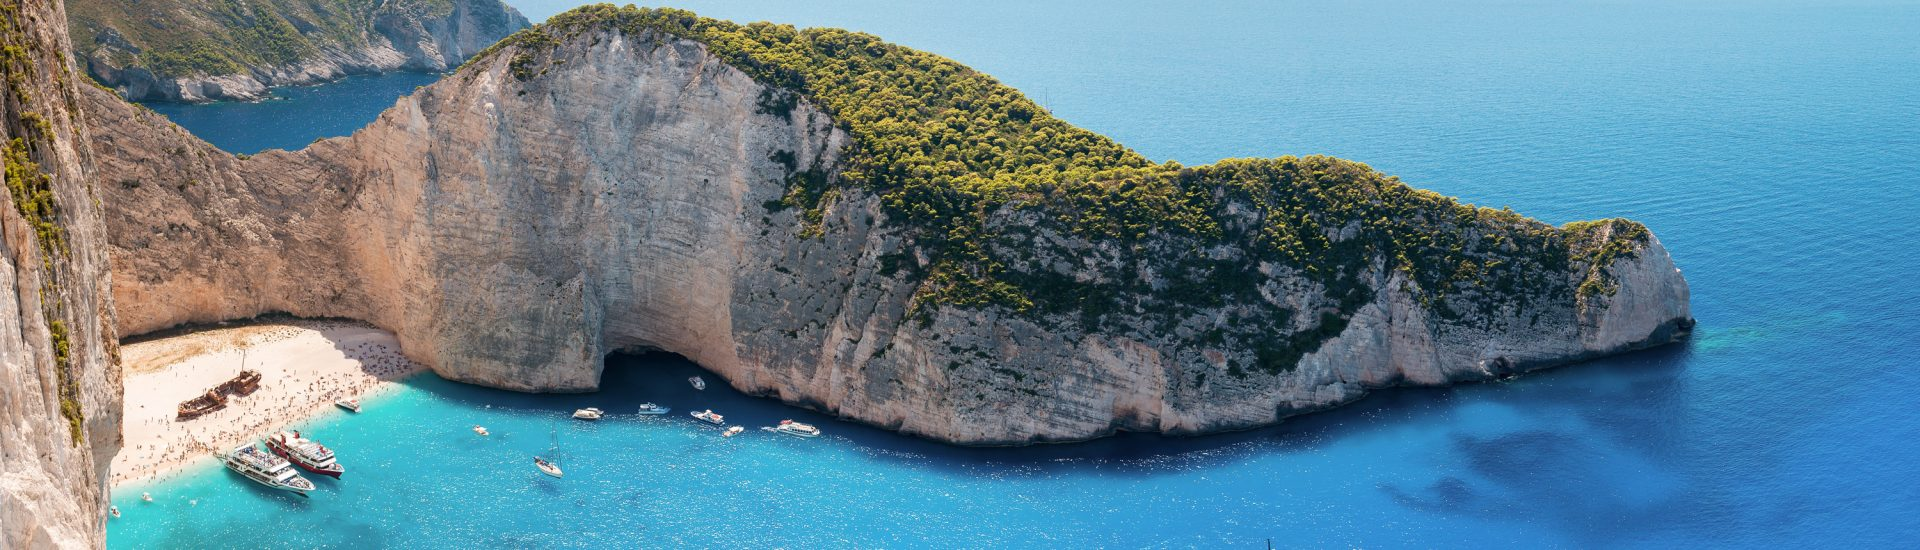 Things to do in Zakynthos Greece, zante, st denis church and the Navagio beach in Zakynthos Greece. Amazing panoramic view of Navagio Bay, Zakynthos, Greece